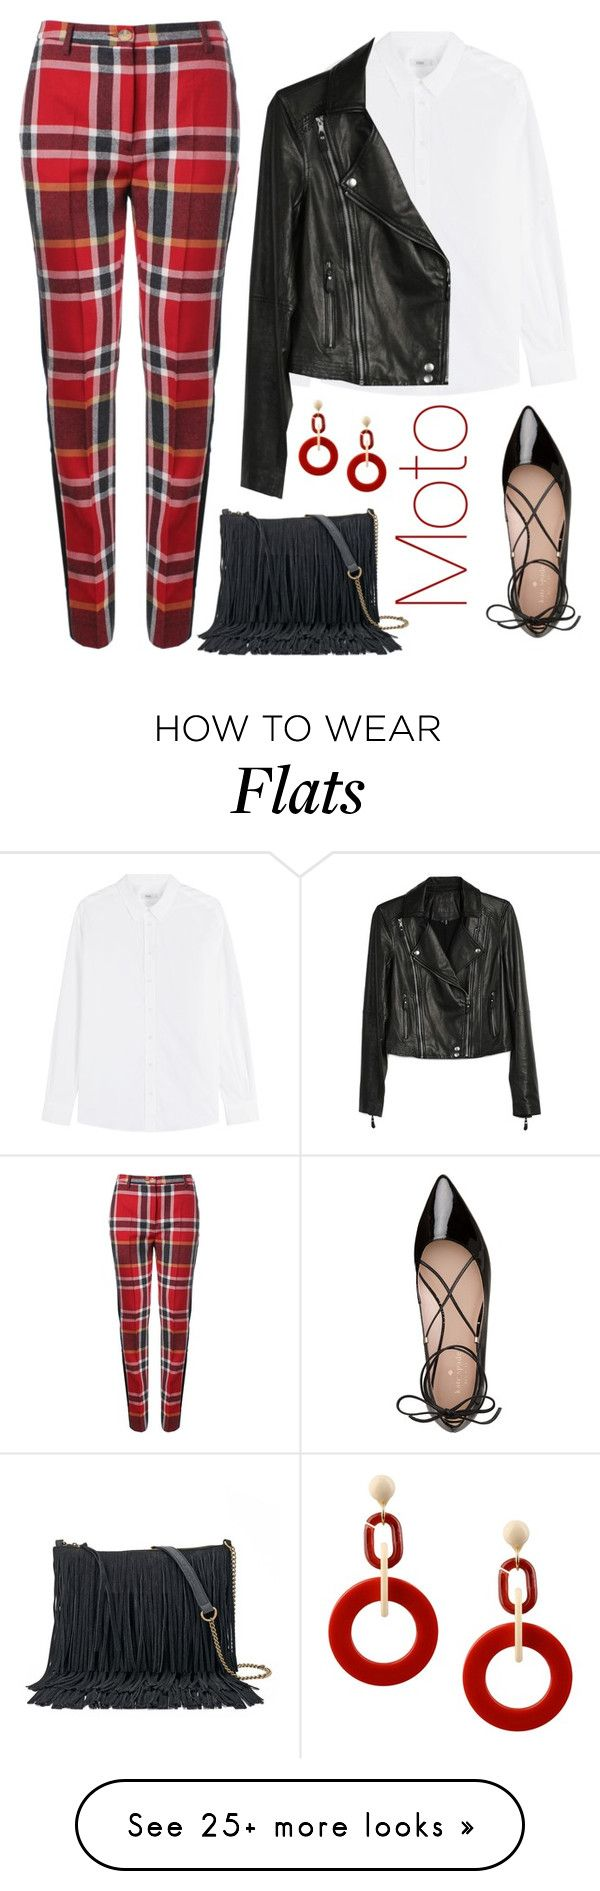 """""""Plaid."""" by emiam on Polyvore featuring Vivienne Westwood Red Label, Closed, Paige Denim, Kate Spade, SONOMA Goods for Life and Dettagli"""